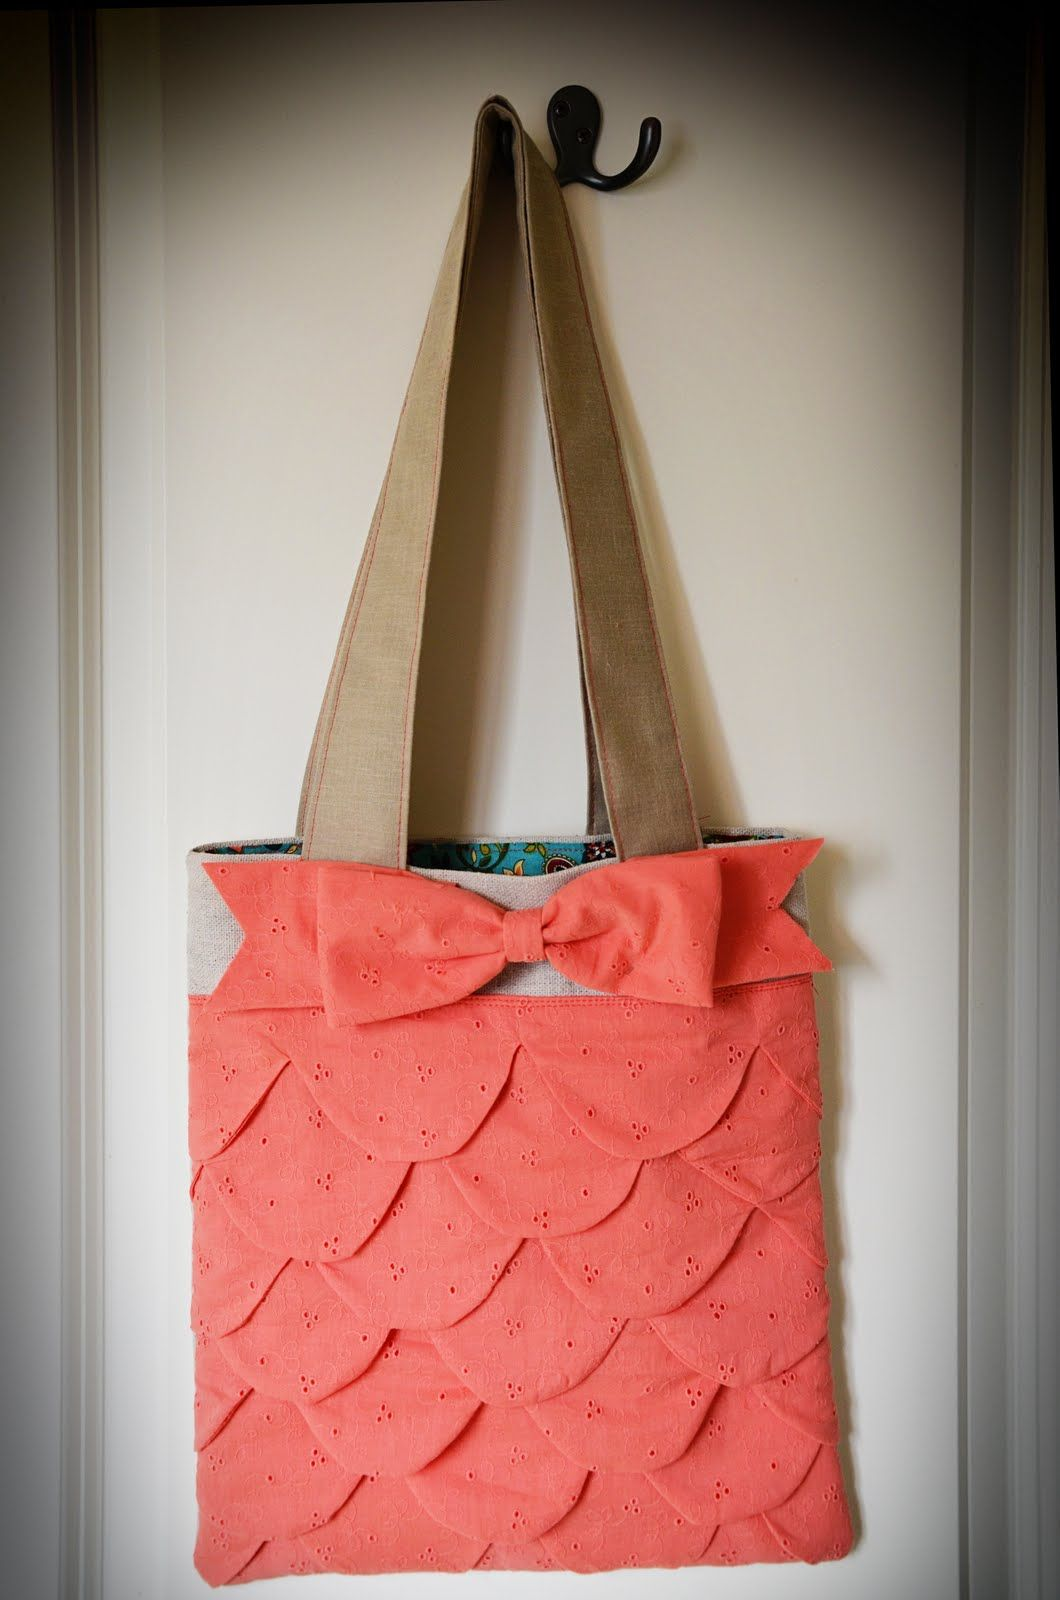 Scallop tote with bow by Smile Like You Mean It from see kate sew pattern.